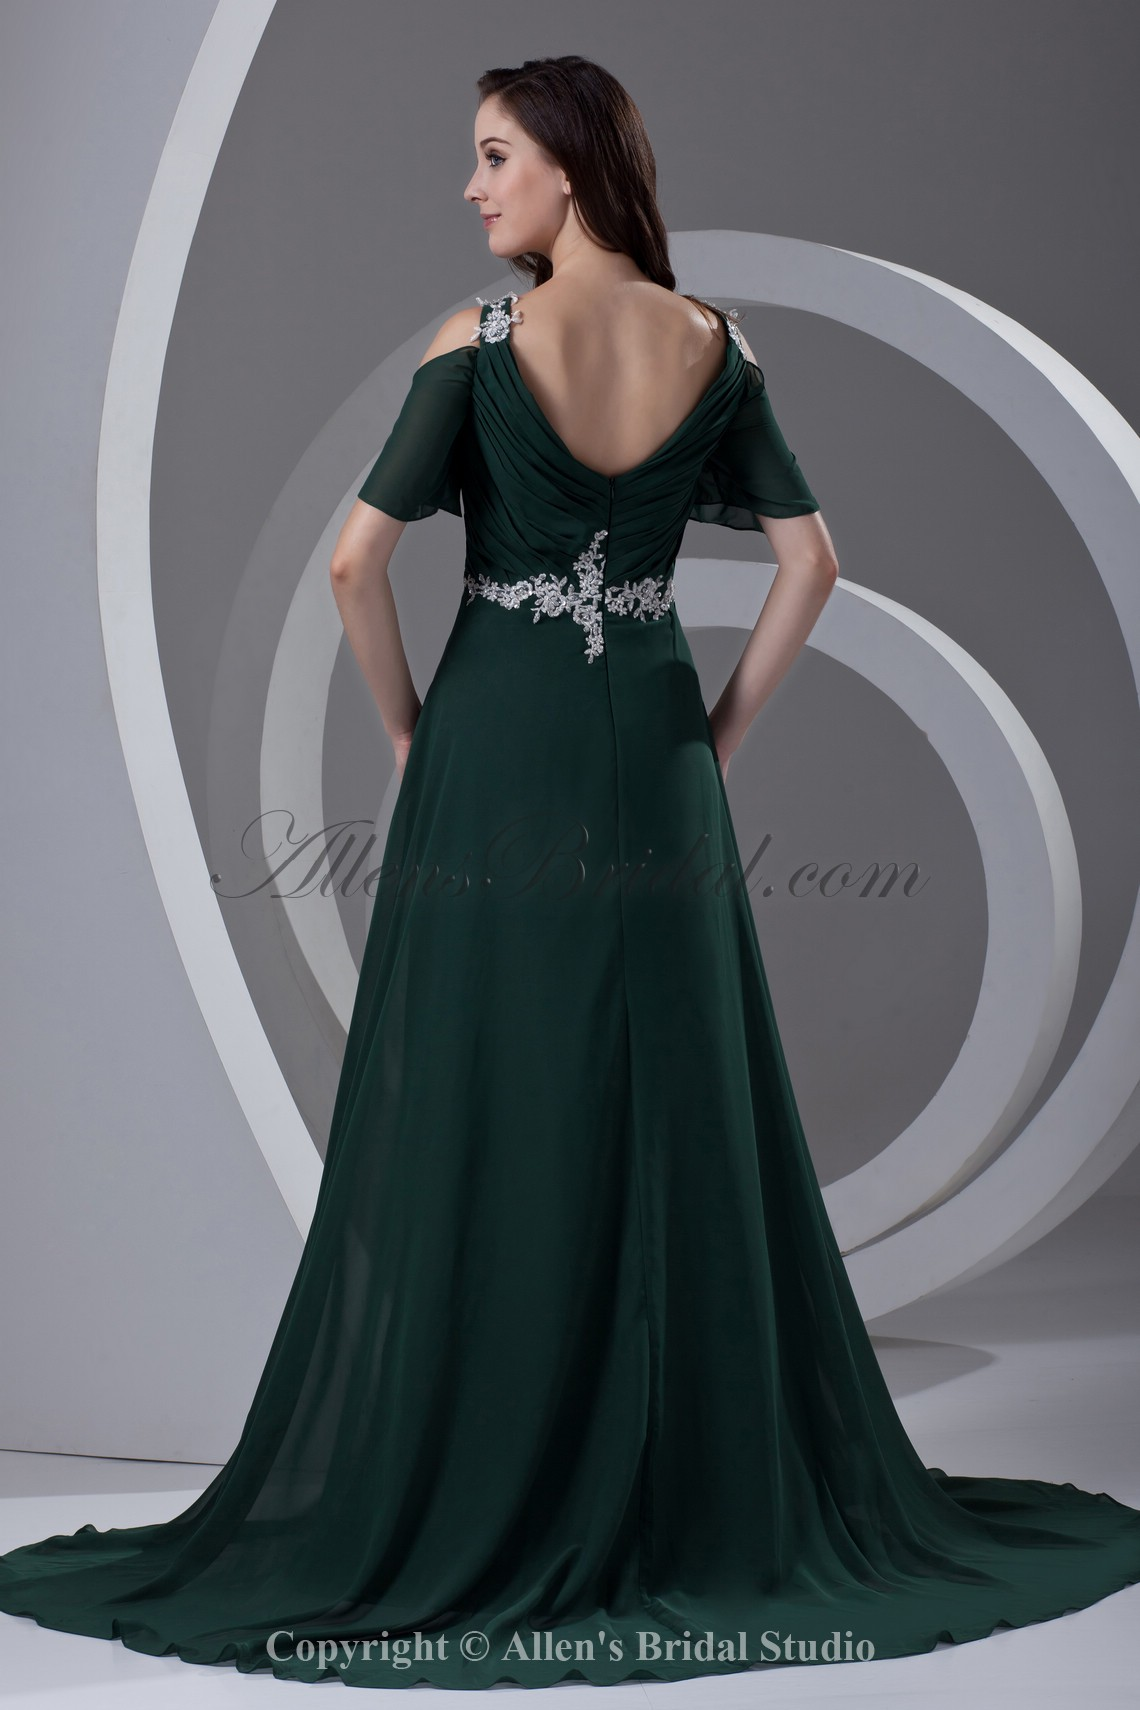 /366-2930/chiffon-straps-neckline-a-line-sweep-train-embroidered-prom-dress.jpg